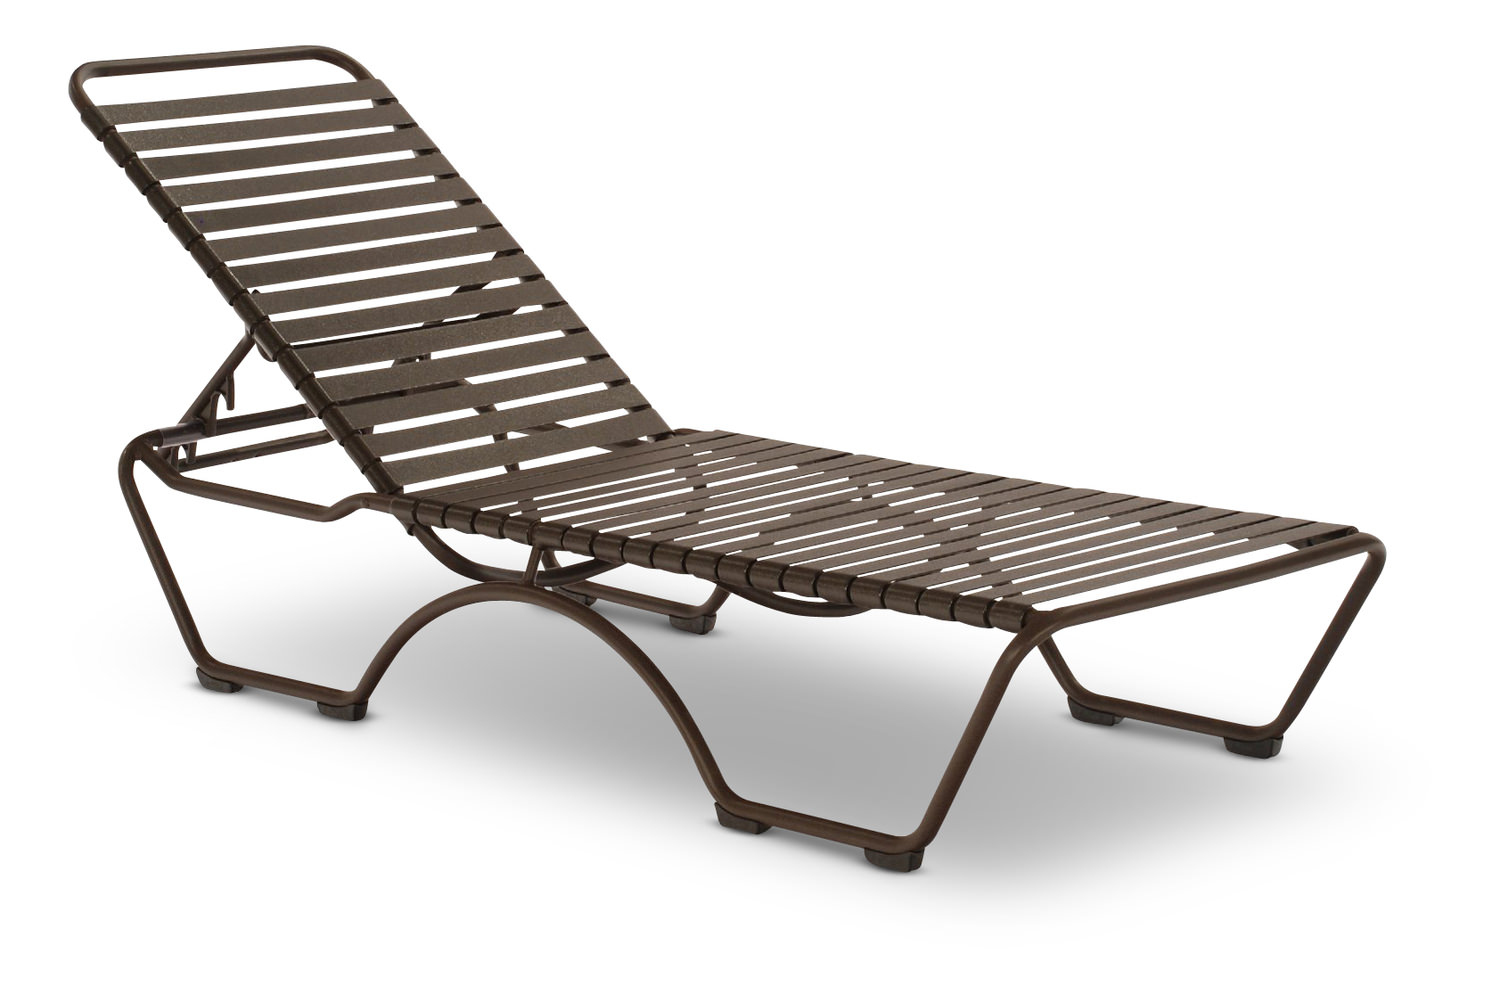 Kahana Strap Chaise Lounge By Tropitone Hom Furniture